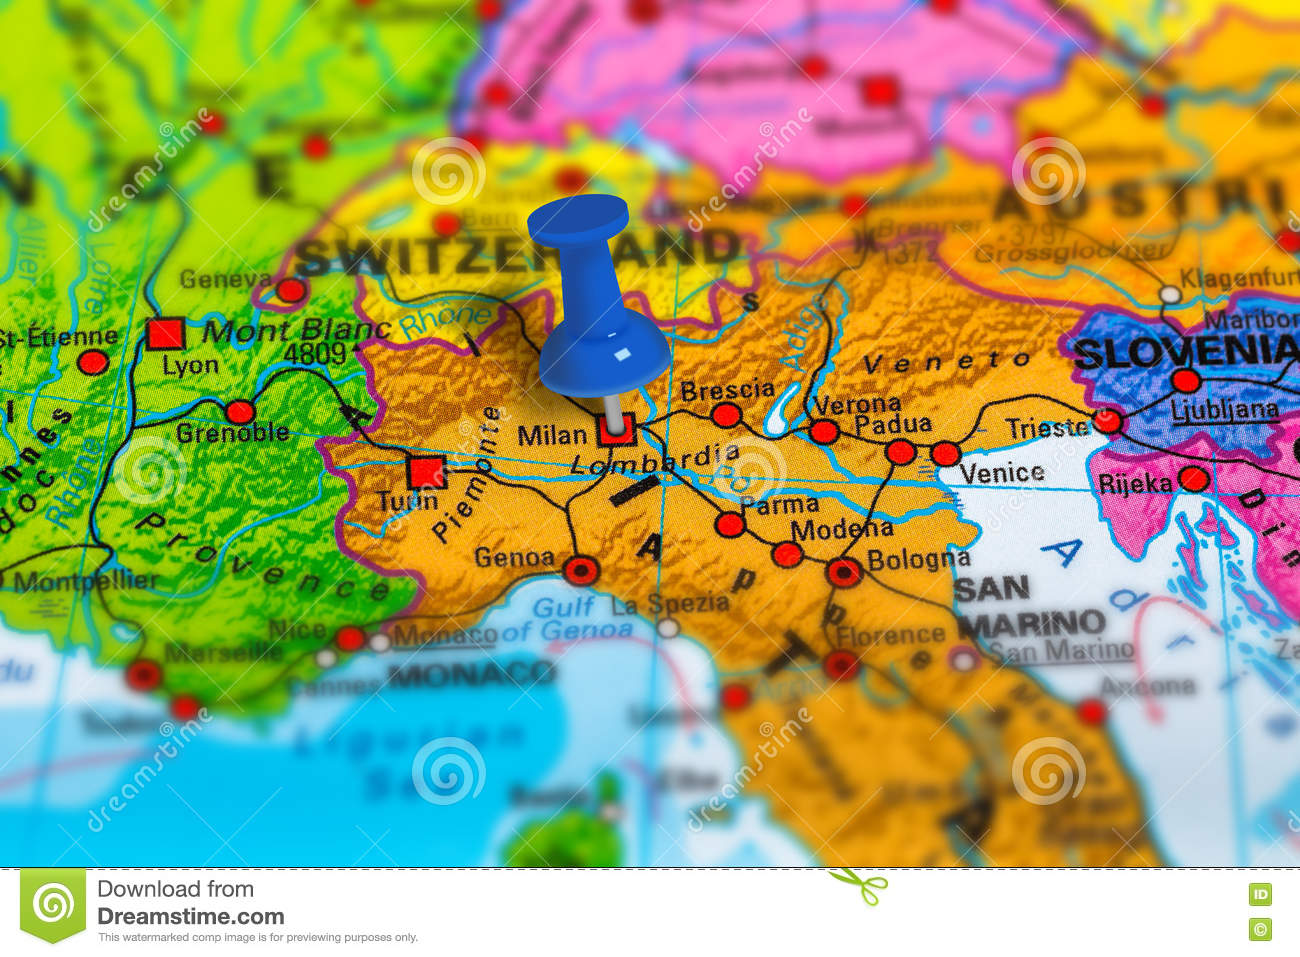 Milan Italy map stock photo. Image of landmark, culture - 80957372